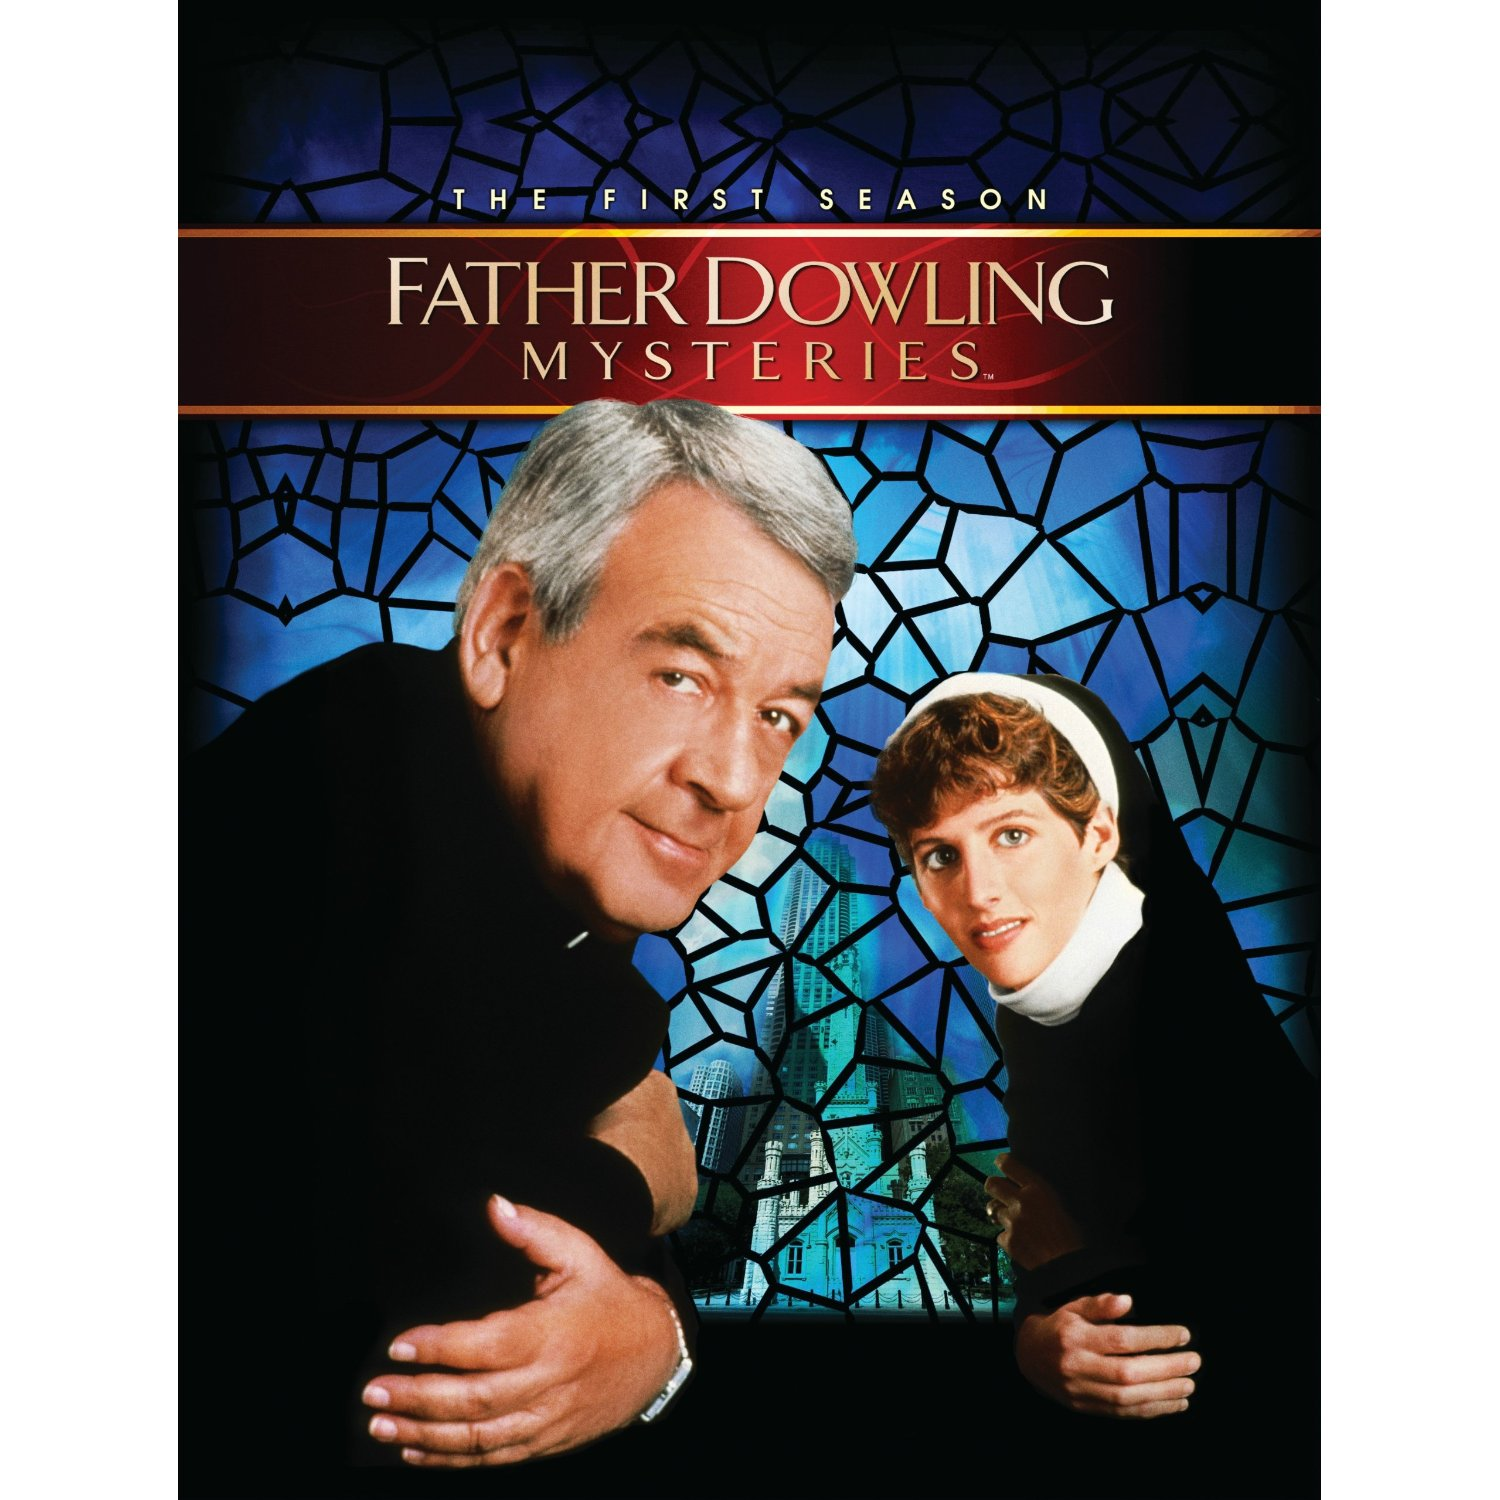 http://upcomingdiscs.com/ecs_covers/father-dowling-mysteries-the-first-season-large.jpg